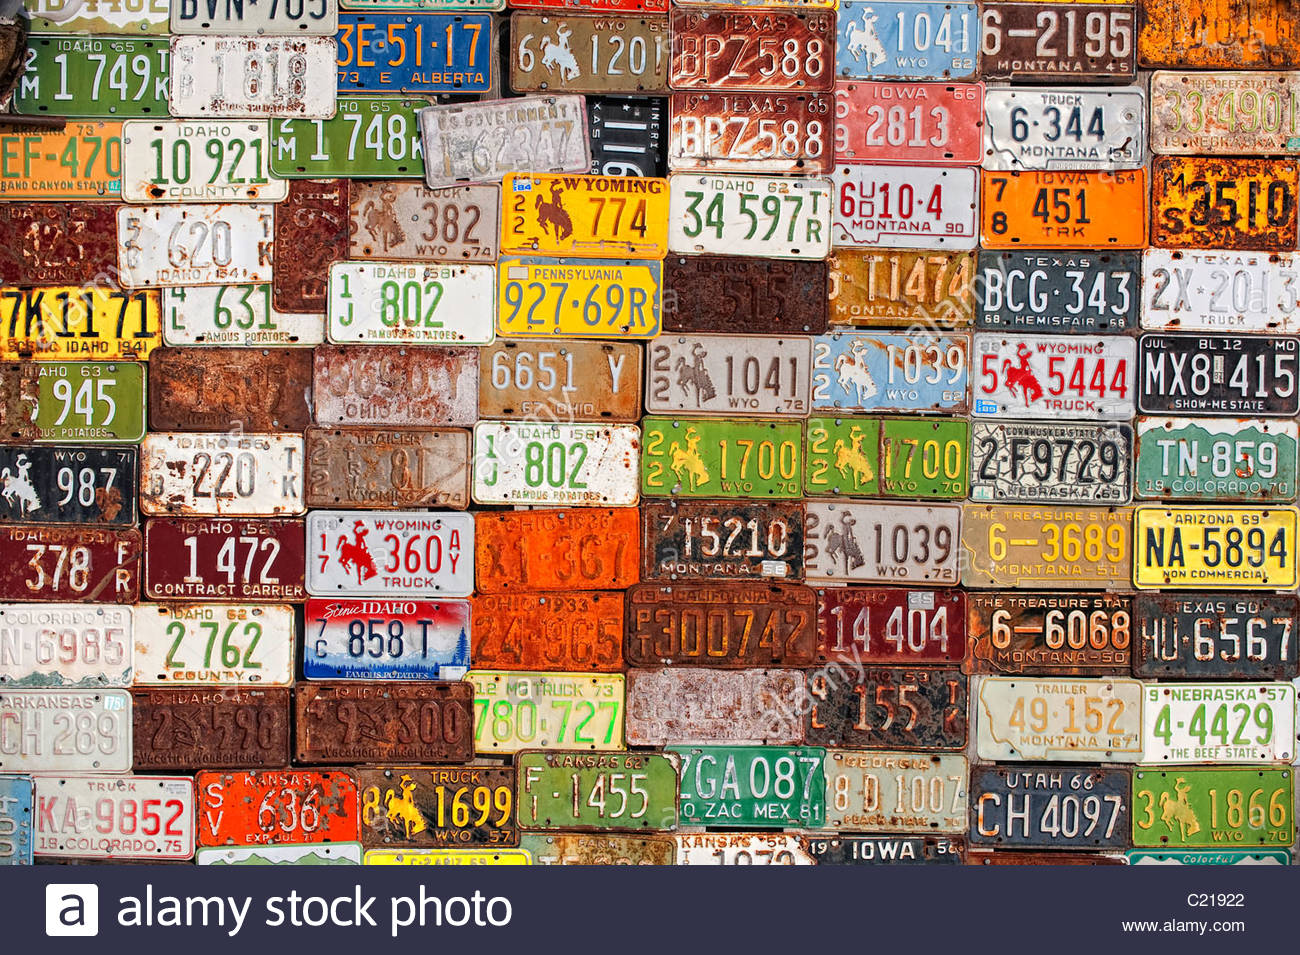 Old License Plates on Barn, Idaho Stock Photo: 35679114 - Alamy